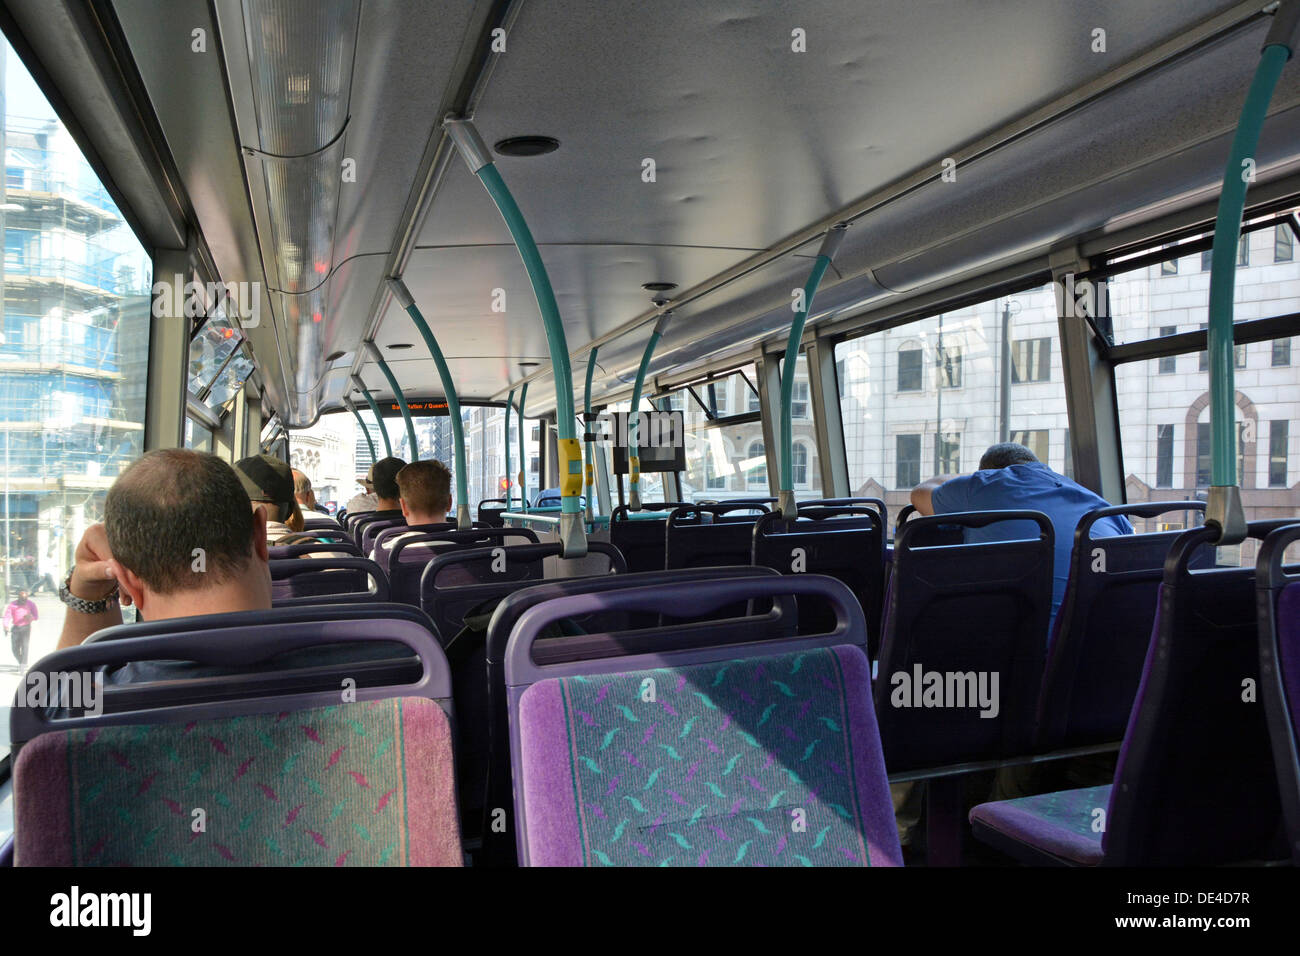 London double decker bus interior with passengers Stock ...